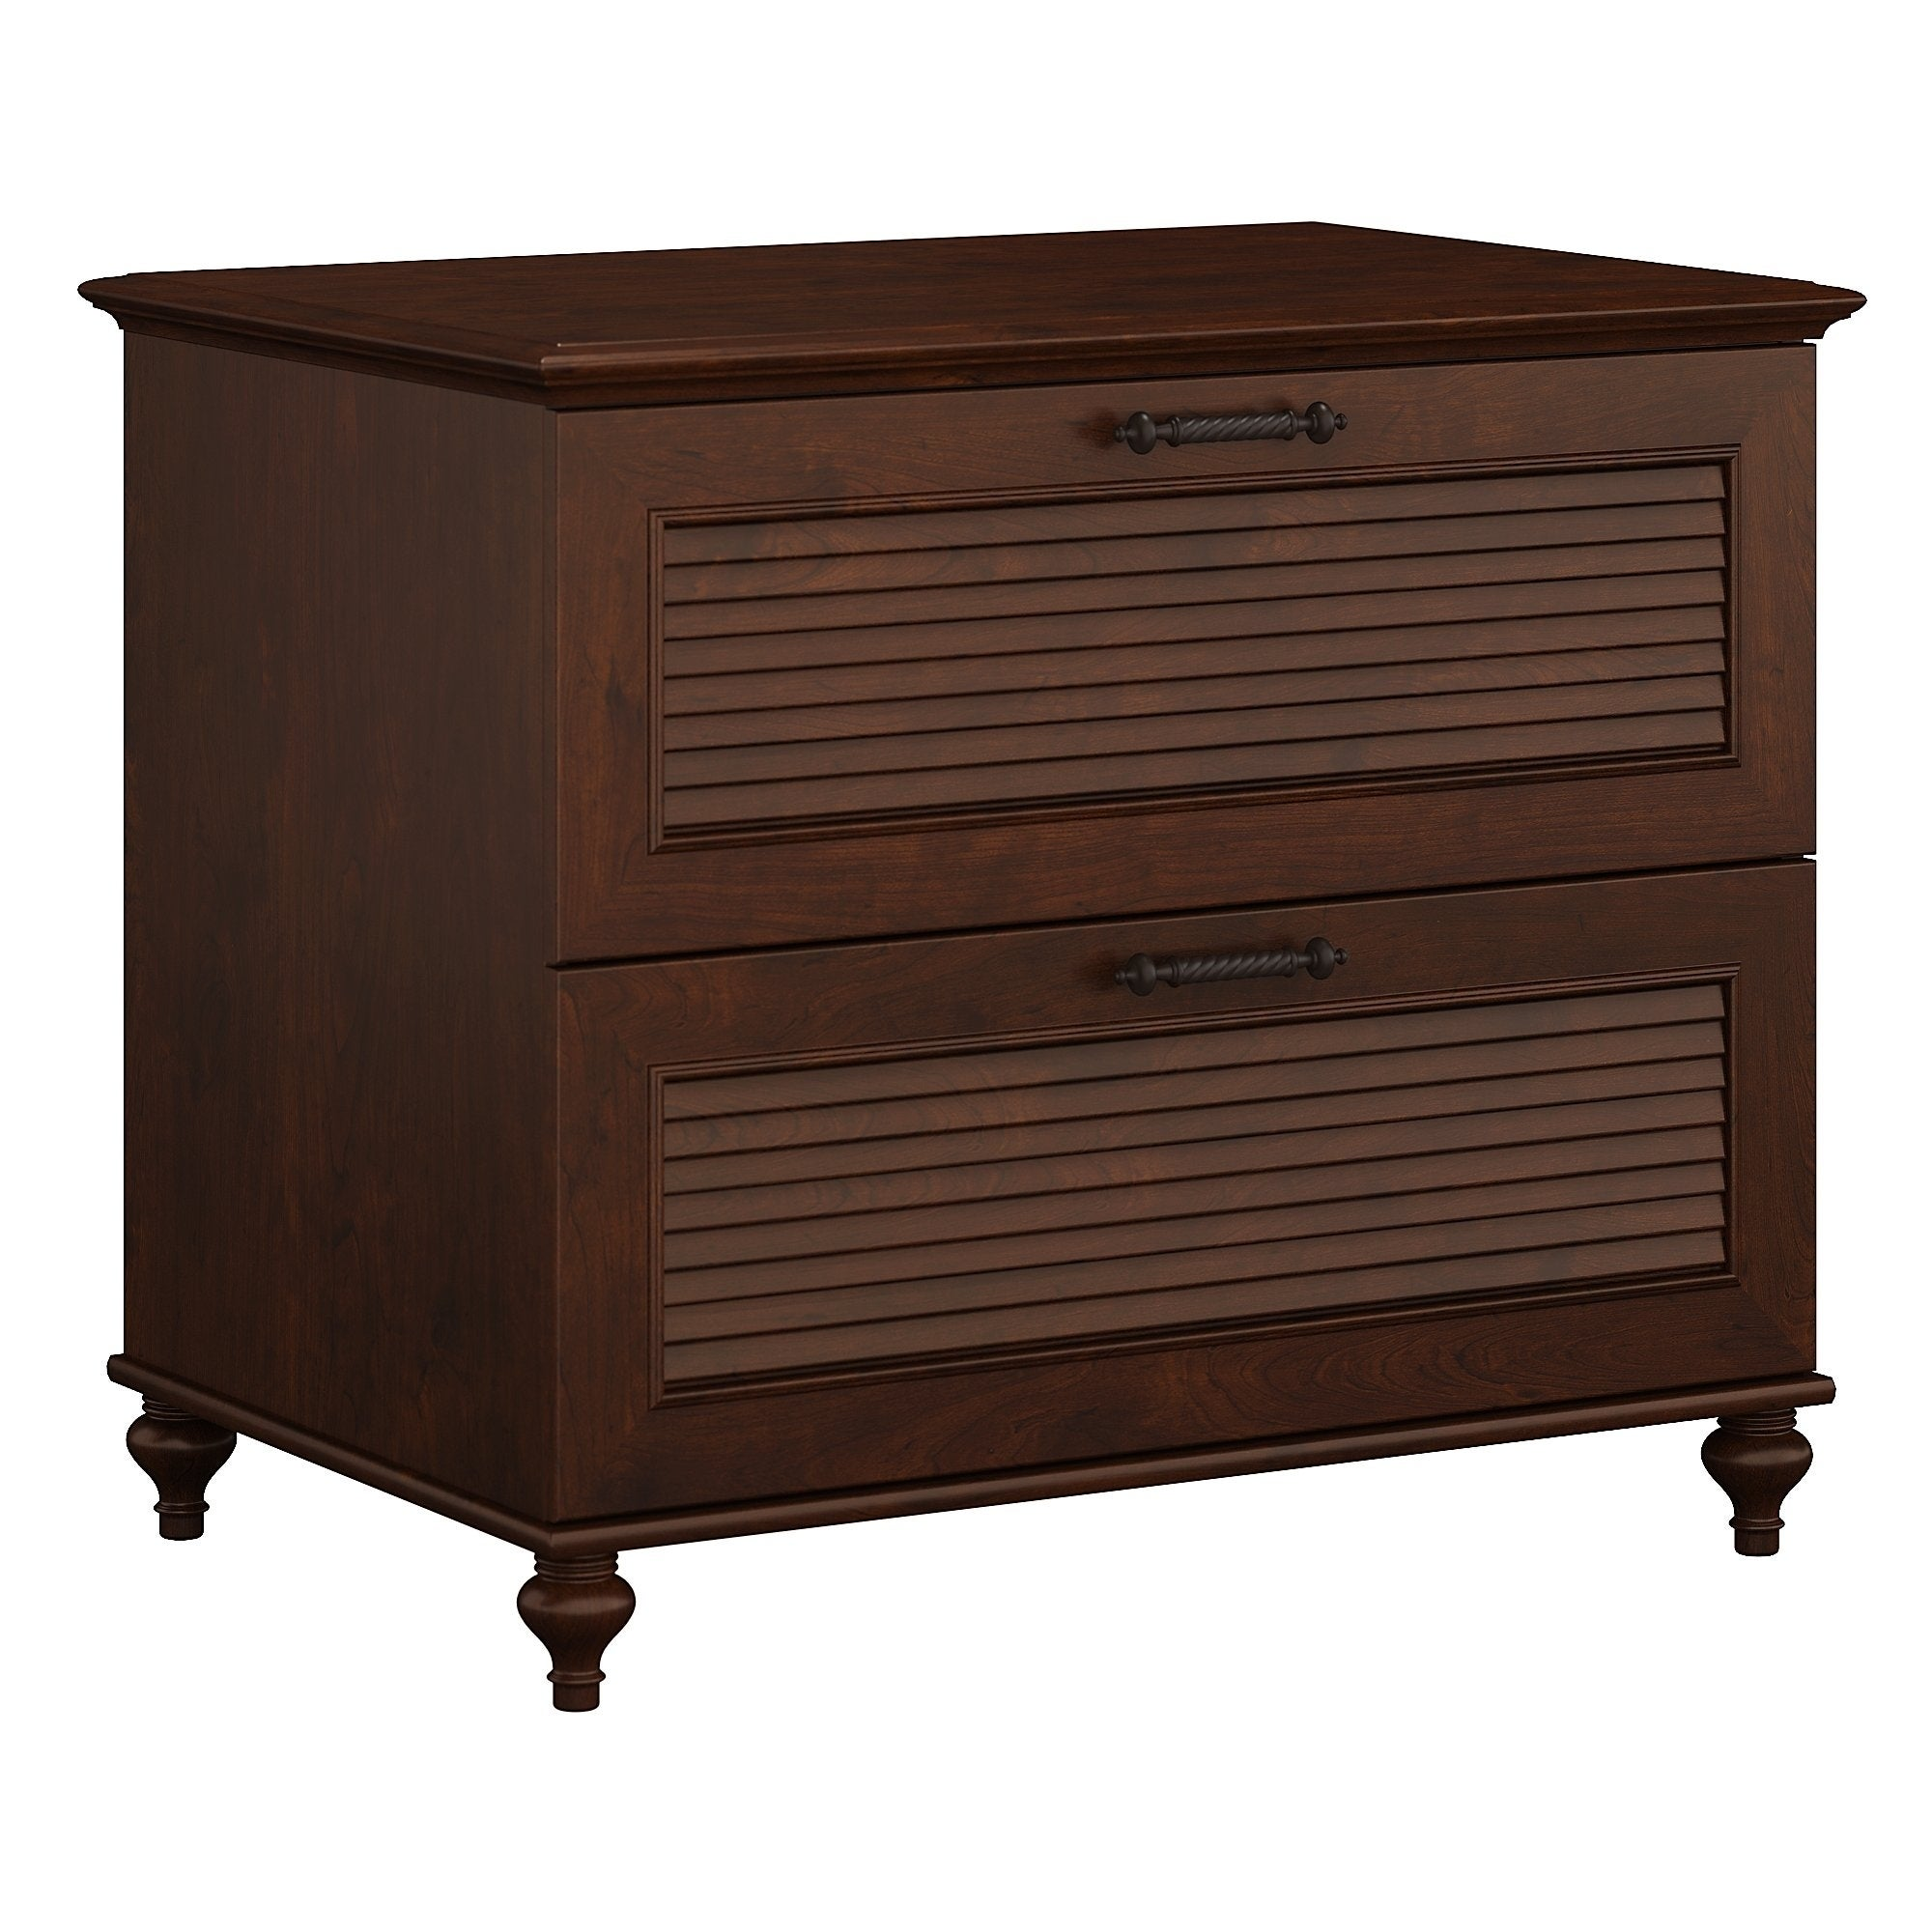 Kathy Ireland® Office By Bush Furniture Volcano Dusk Lateral Cabinet   Free  Shipping Today   Overstock.com   21000731